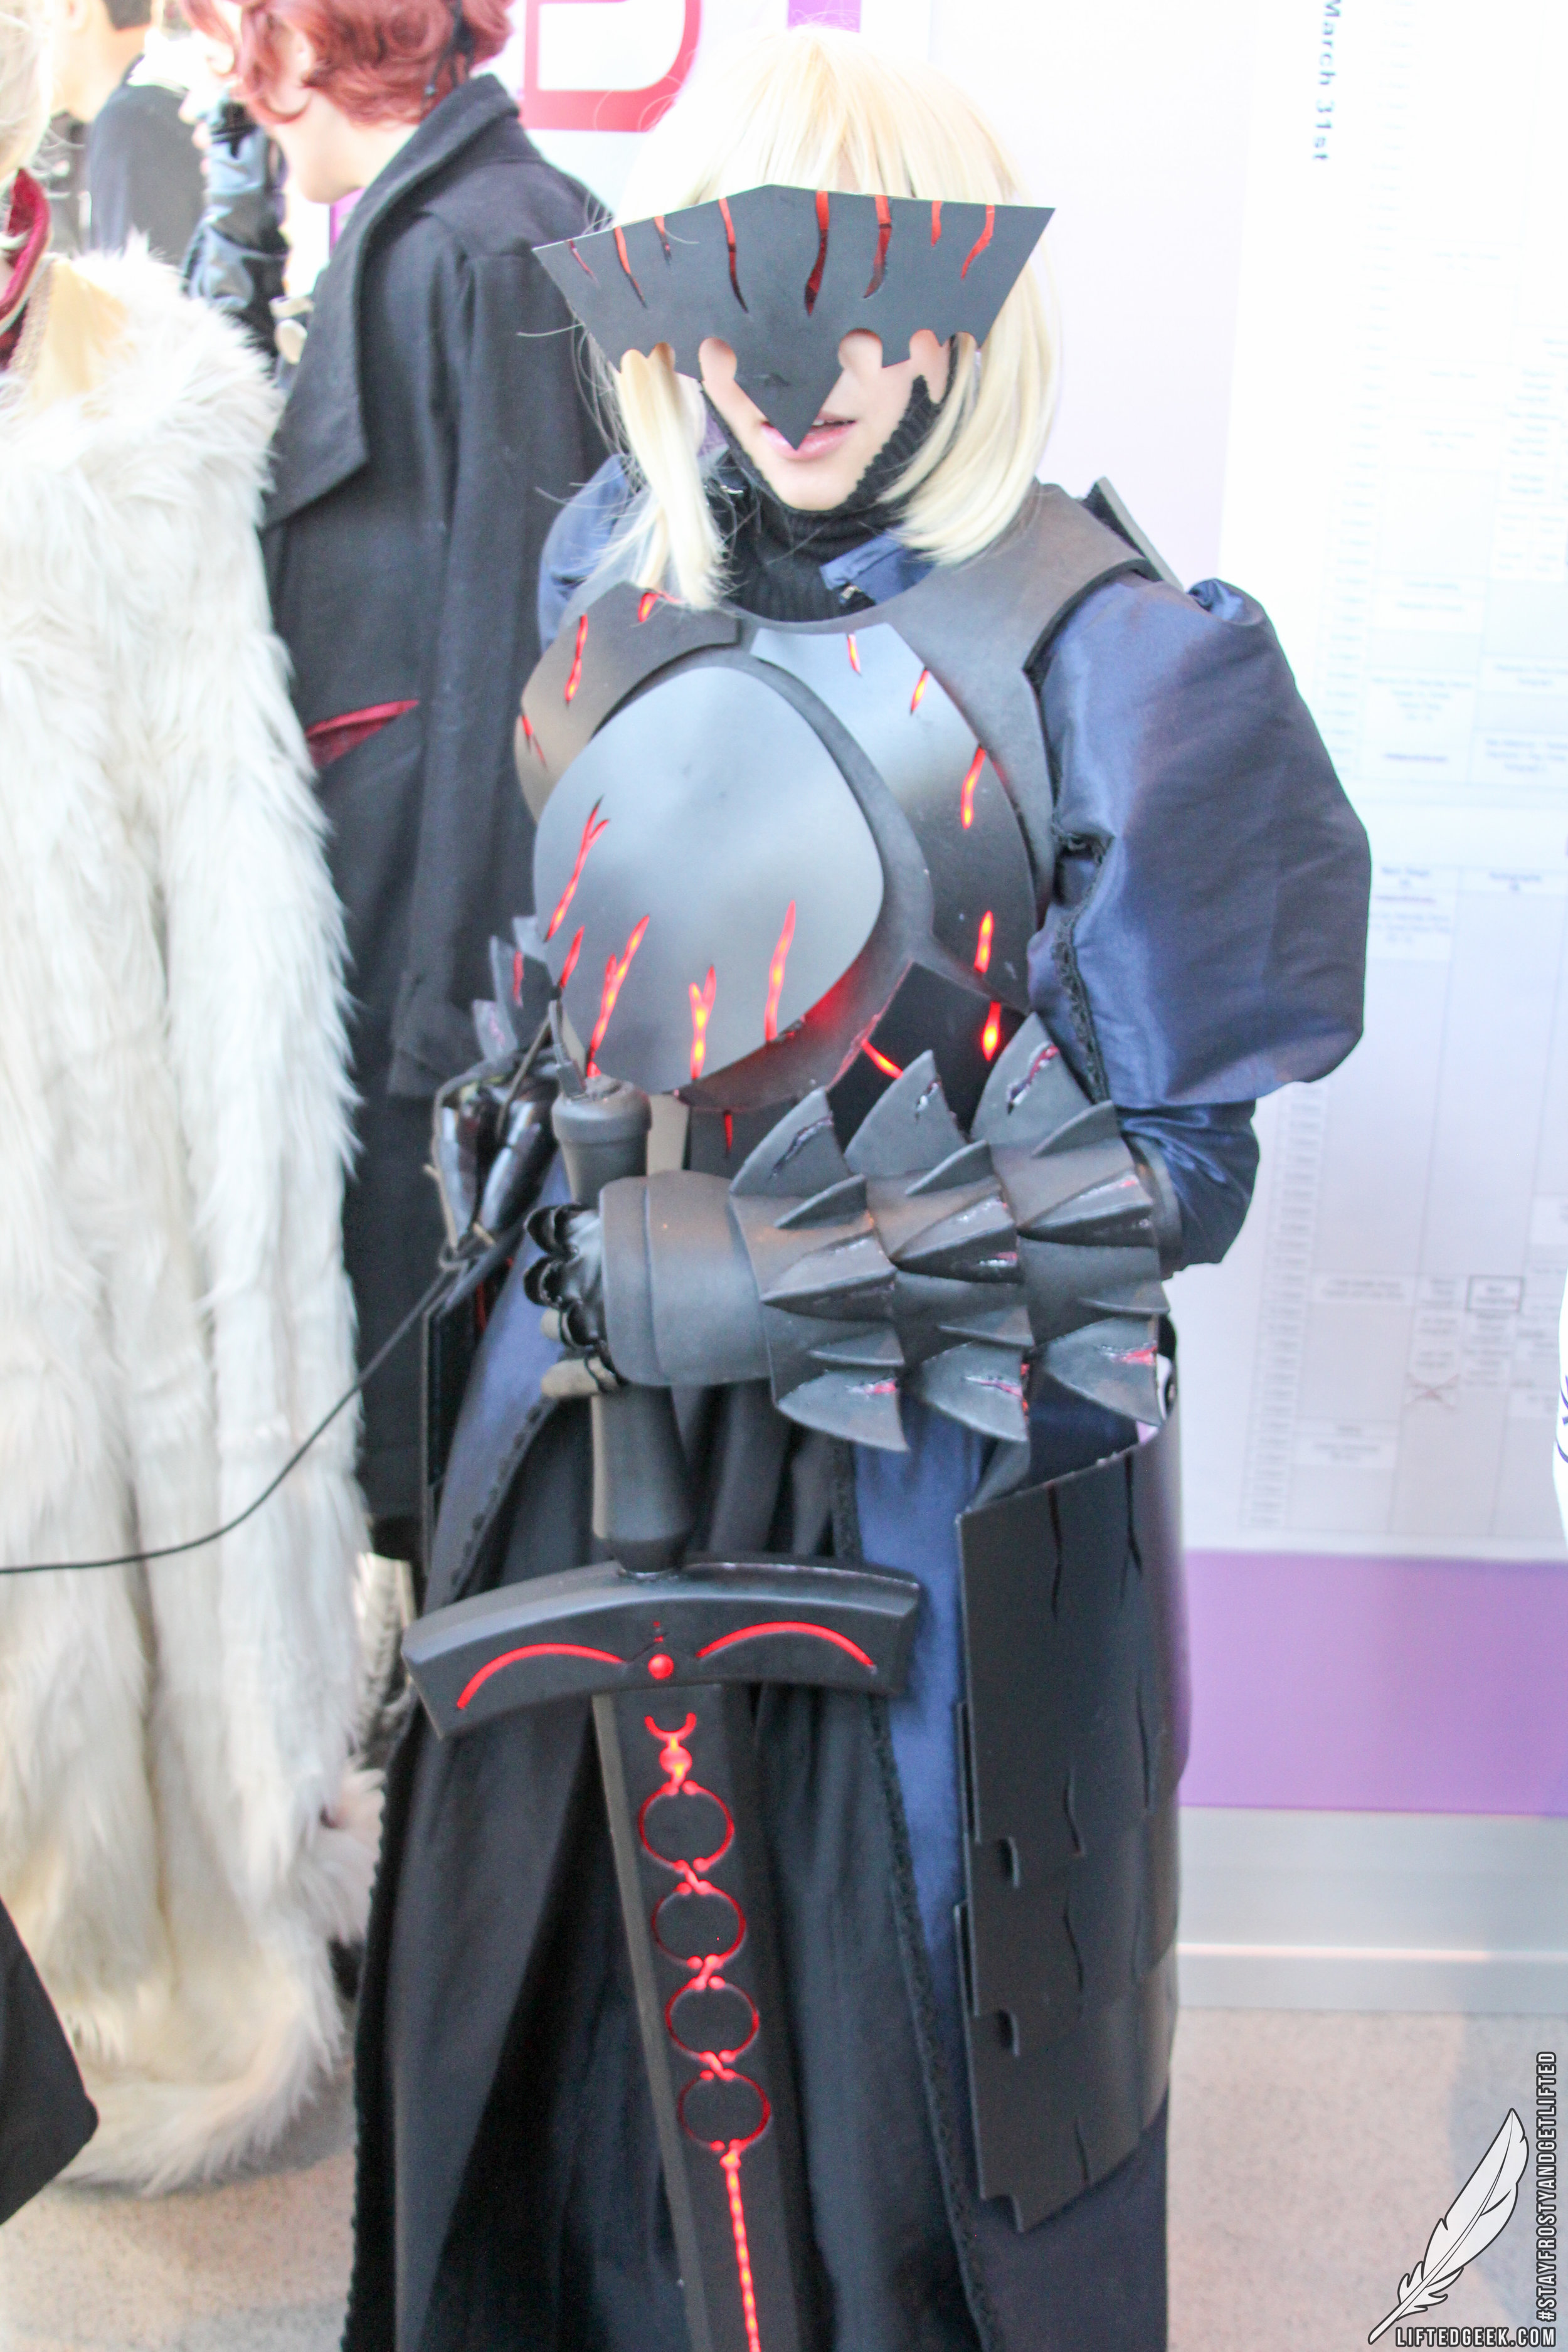 Sakuracon-cosplay-144.jpg